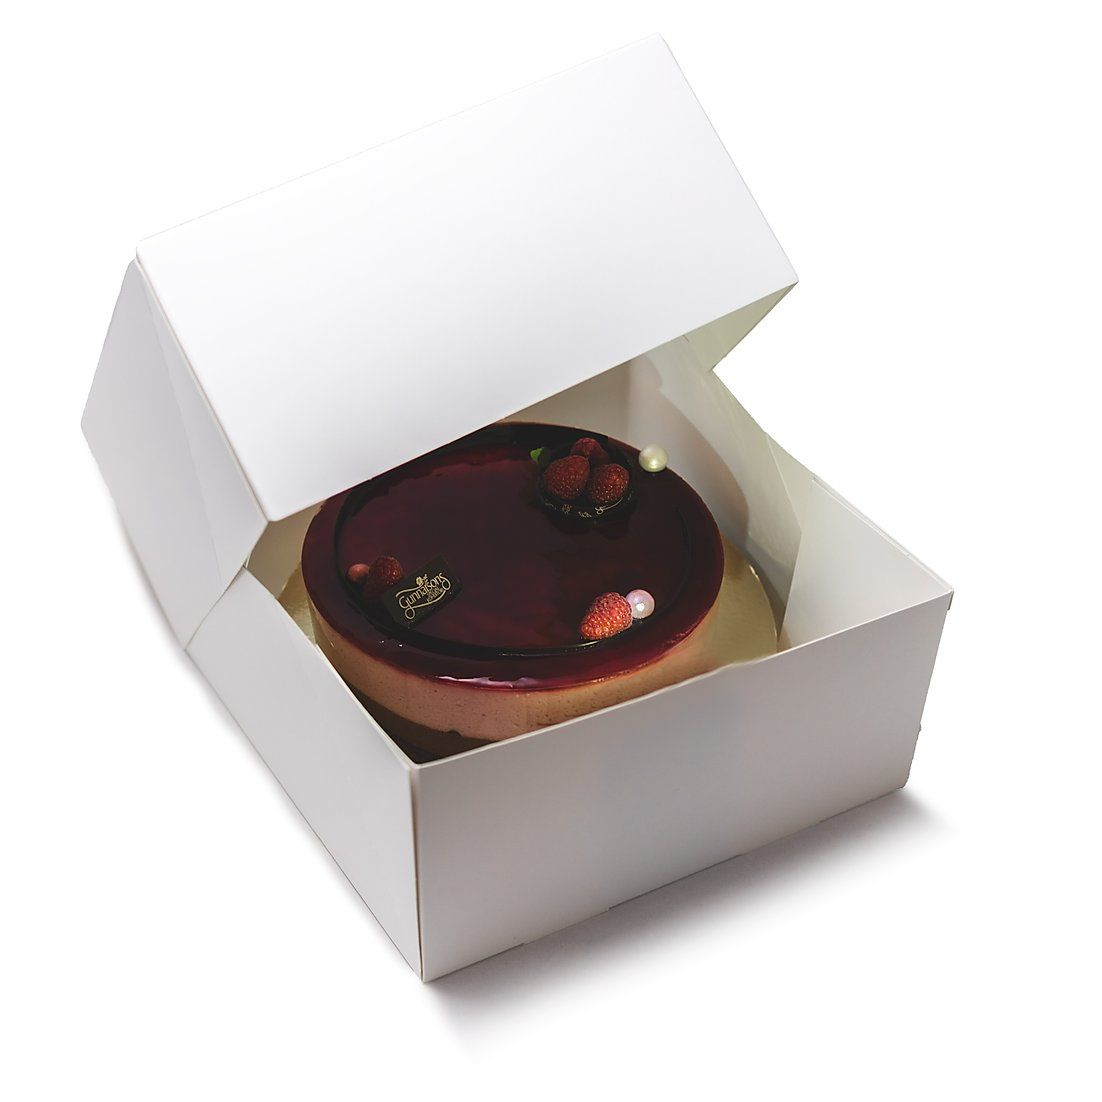 Cake Boxes 10x10x5 Pack Of 50 Cuisinerboxes In 2020 Dessert Containers Box Cake Cake Storage